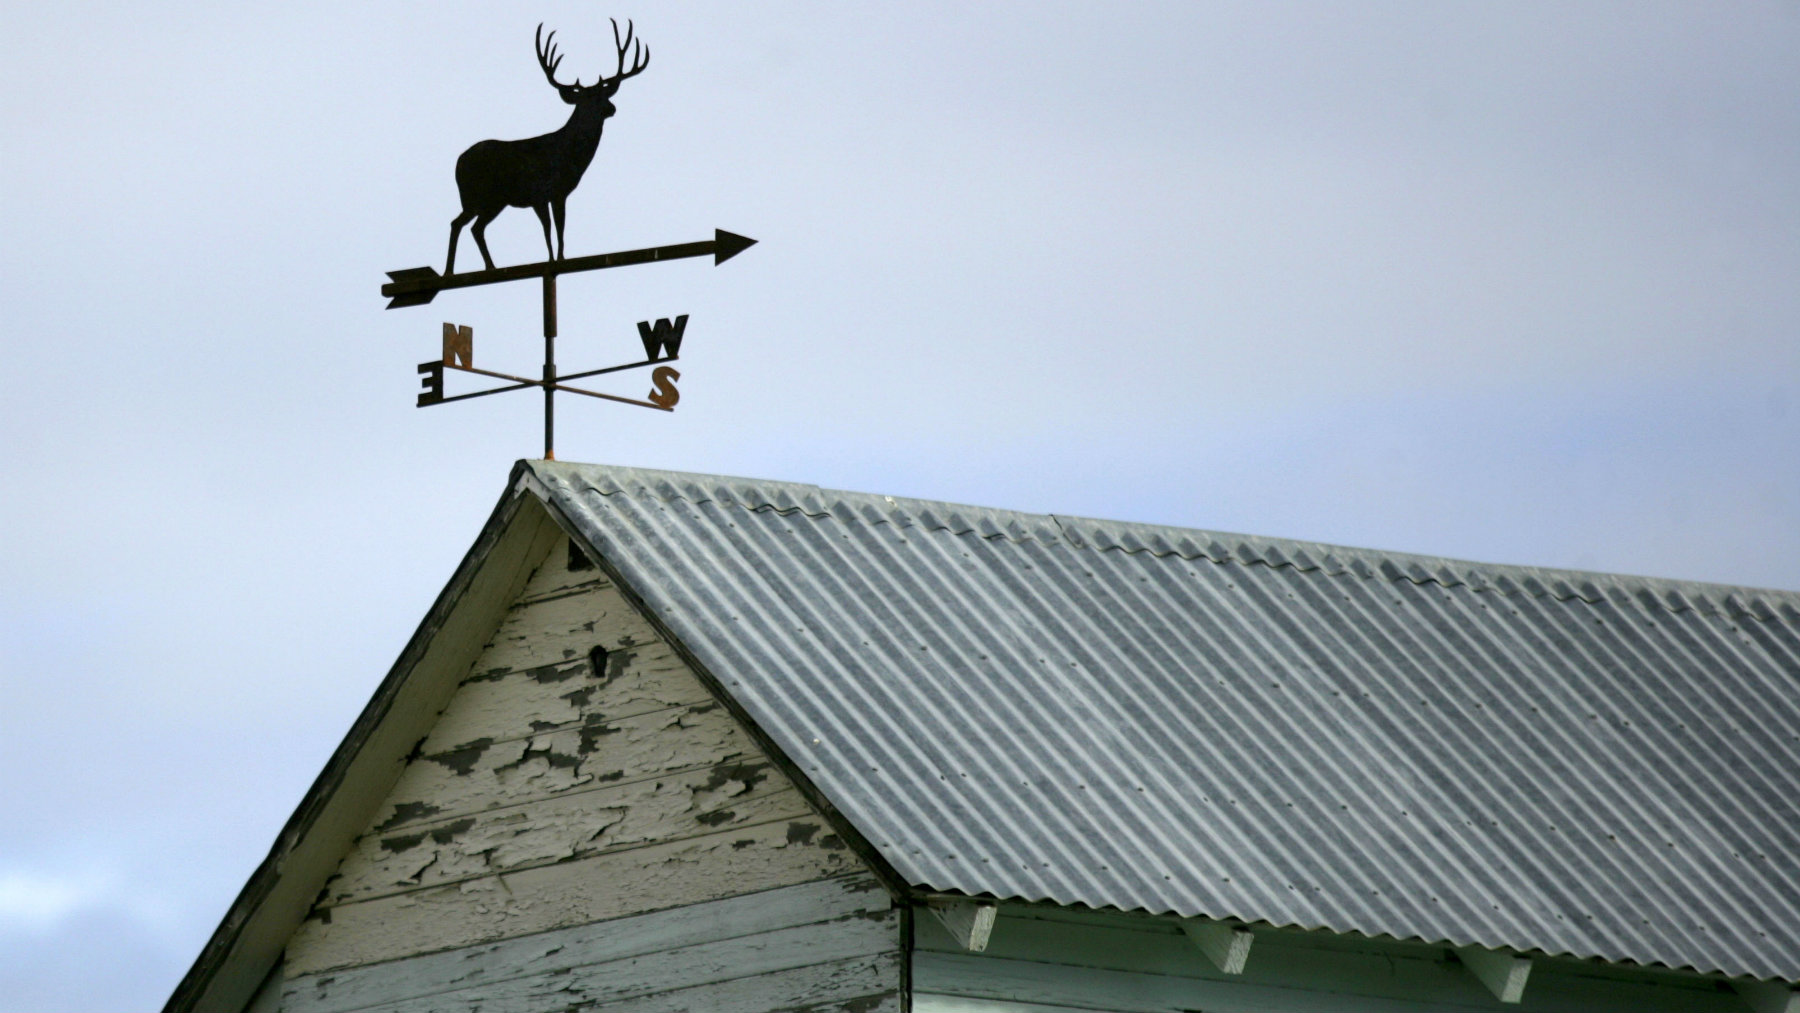 ** ADVANCE FOR WEEKEND OF NOV. 26-27 ** An elk weather vane is shown on top of a shed belonging to wheat farmer Bud Hamilton near Prosser, Wash., Tuesday, Nov. 15, 2005. To folks driving by, the massive elk roaming freely across south-central Washington's rugged, sagebrush-dotted federal land are a delightful sight. To hunters, they are an enticing target that can't be touched. For Hamilton, a farmer whose property abuts the Hanford Reach, the large stands of elk pose a bust to his crop. (AP Photo/Jackie Johnston)